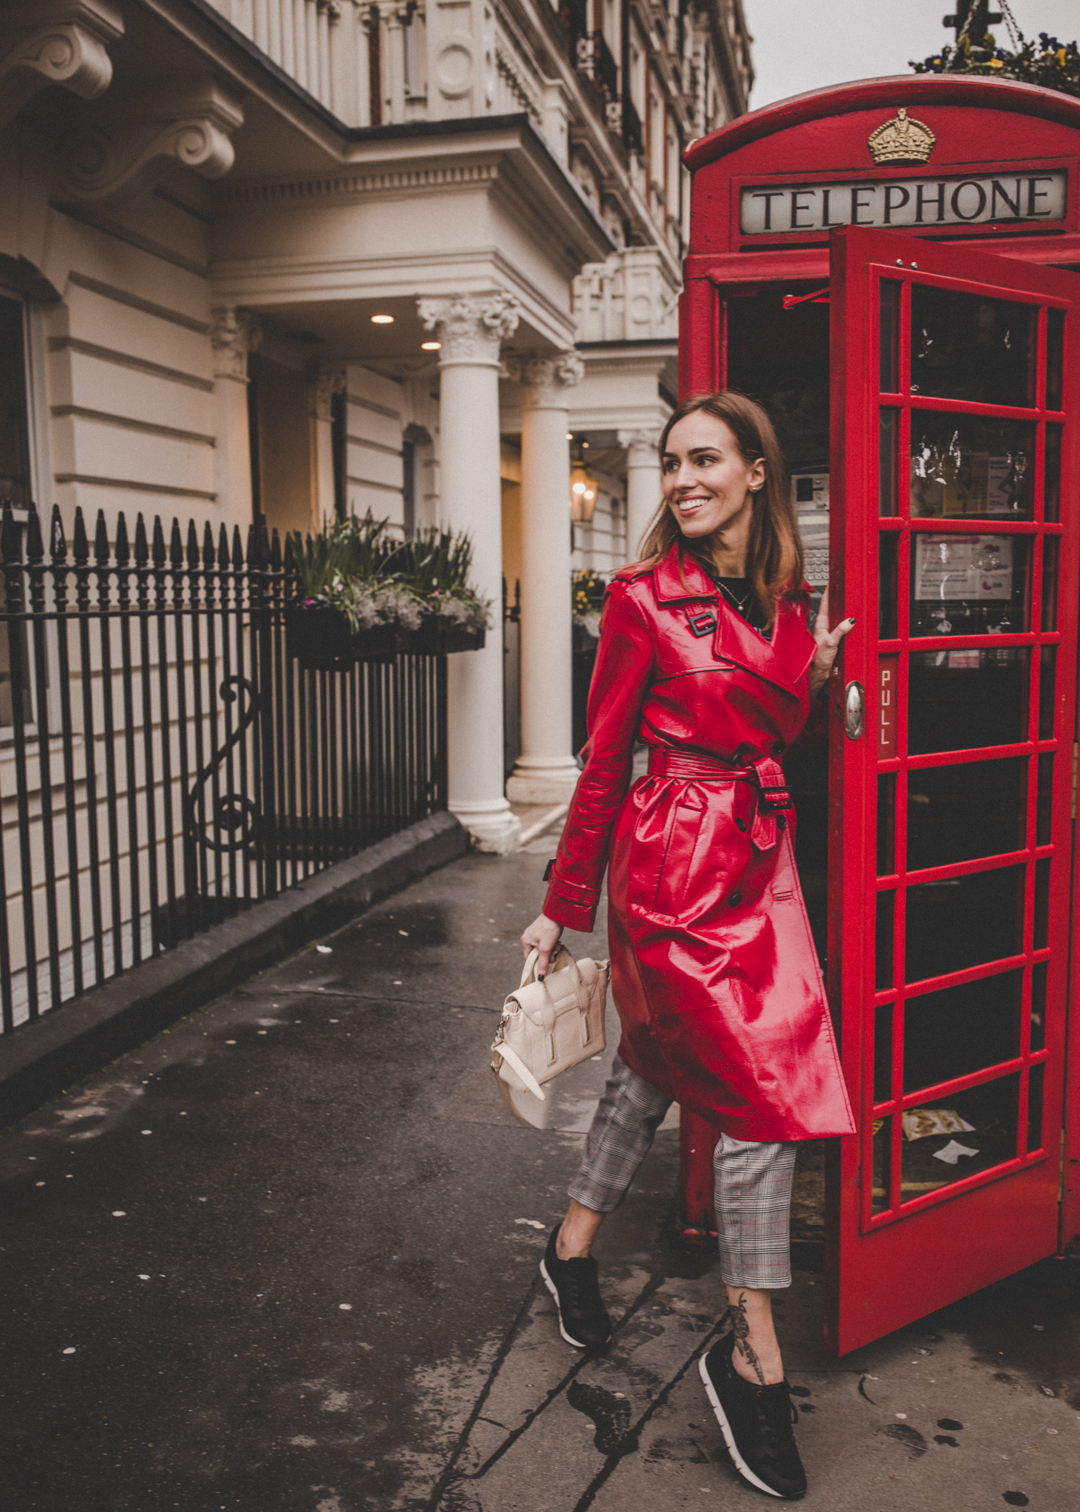 london telephone booth photo red vinyl trench coat